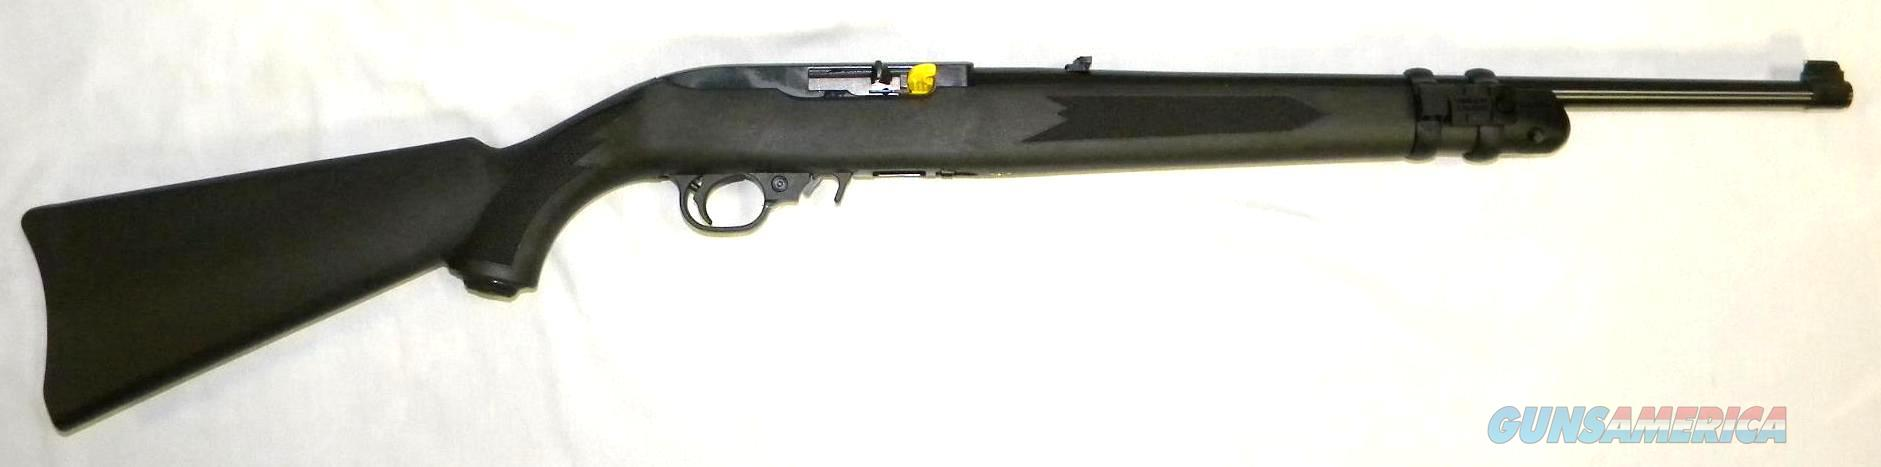 Ruger 10/22, With Factory LaserMax Laser Mounted  Guns > Rifles > Ruger Rifles > 10-22